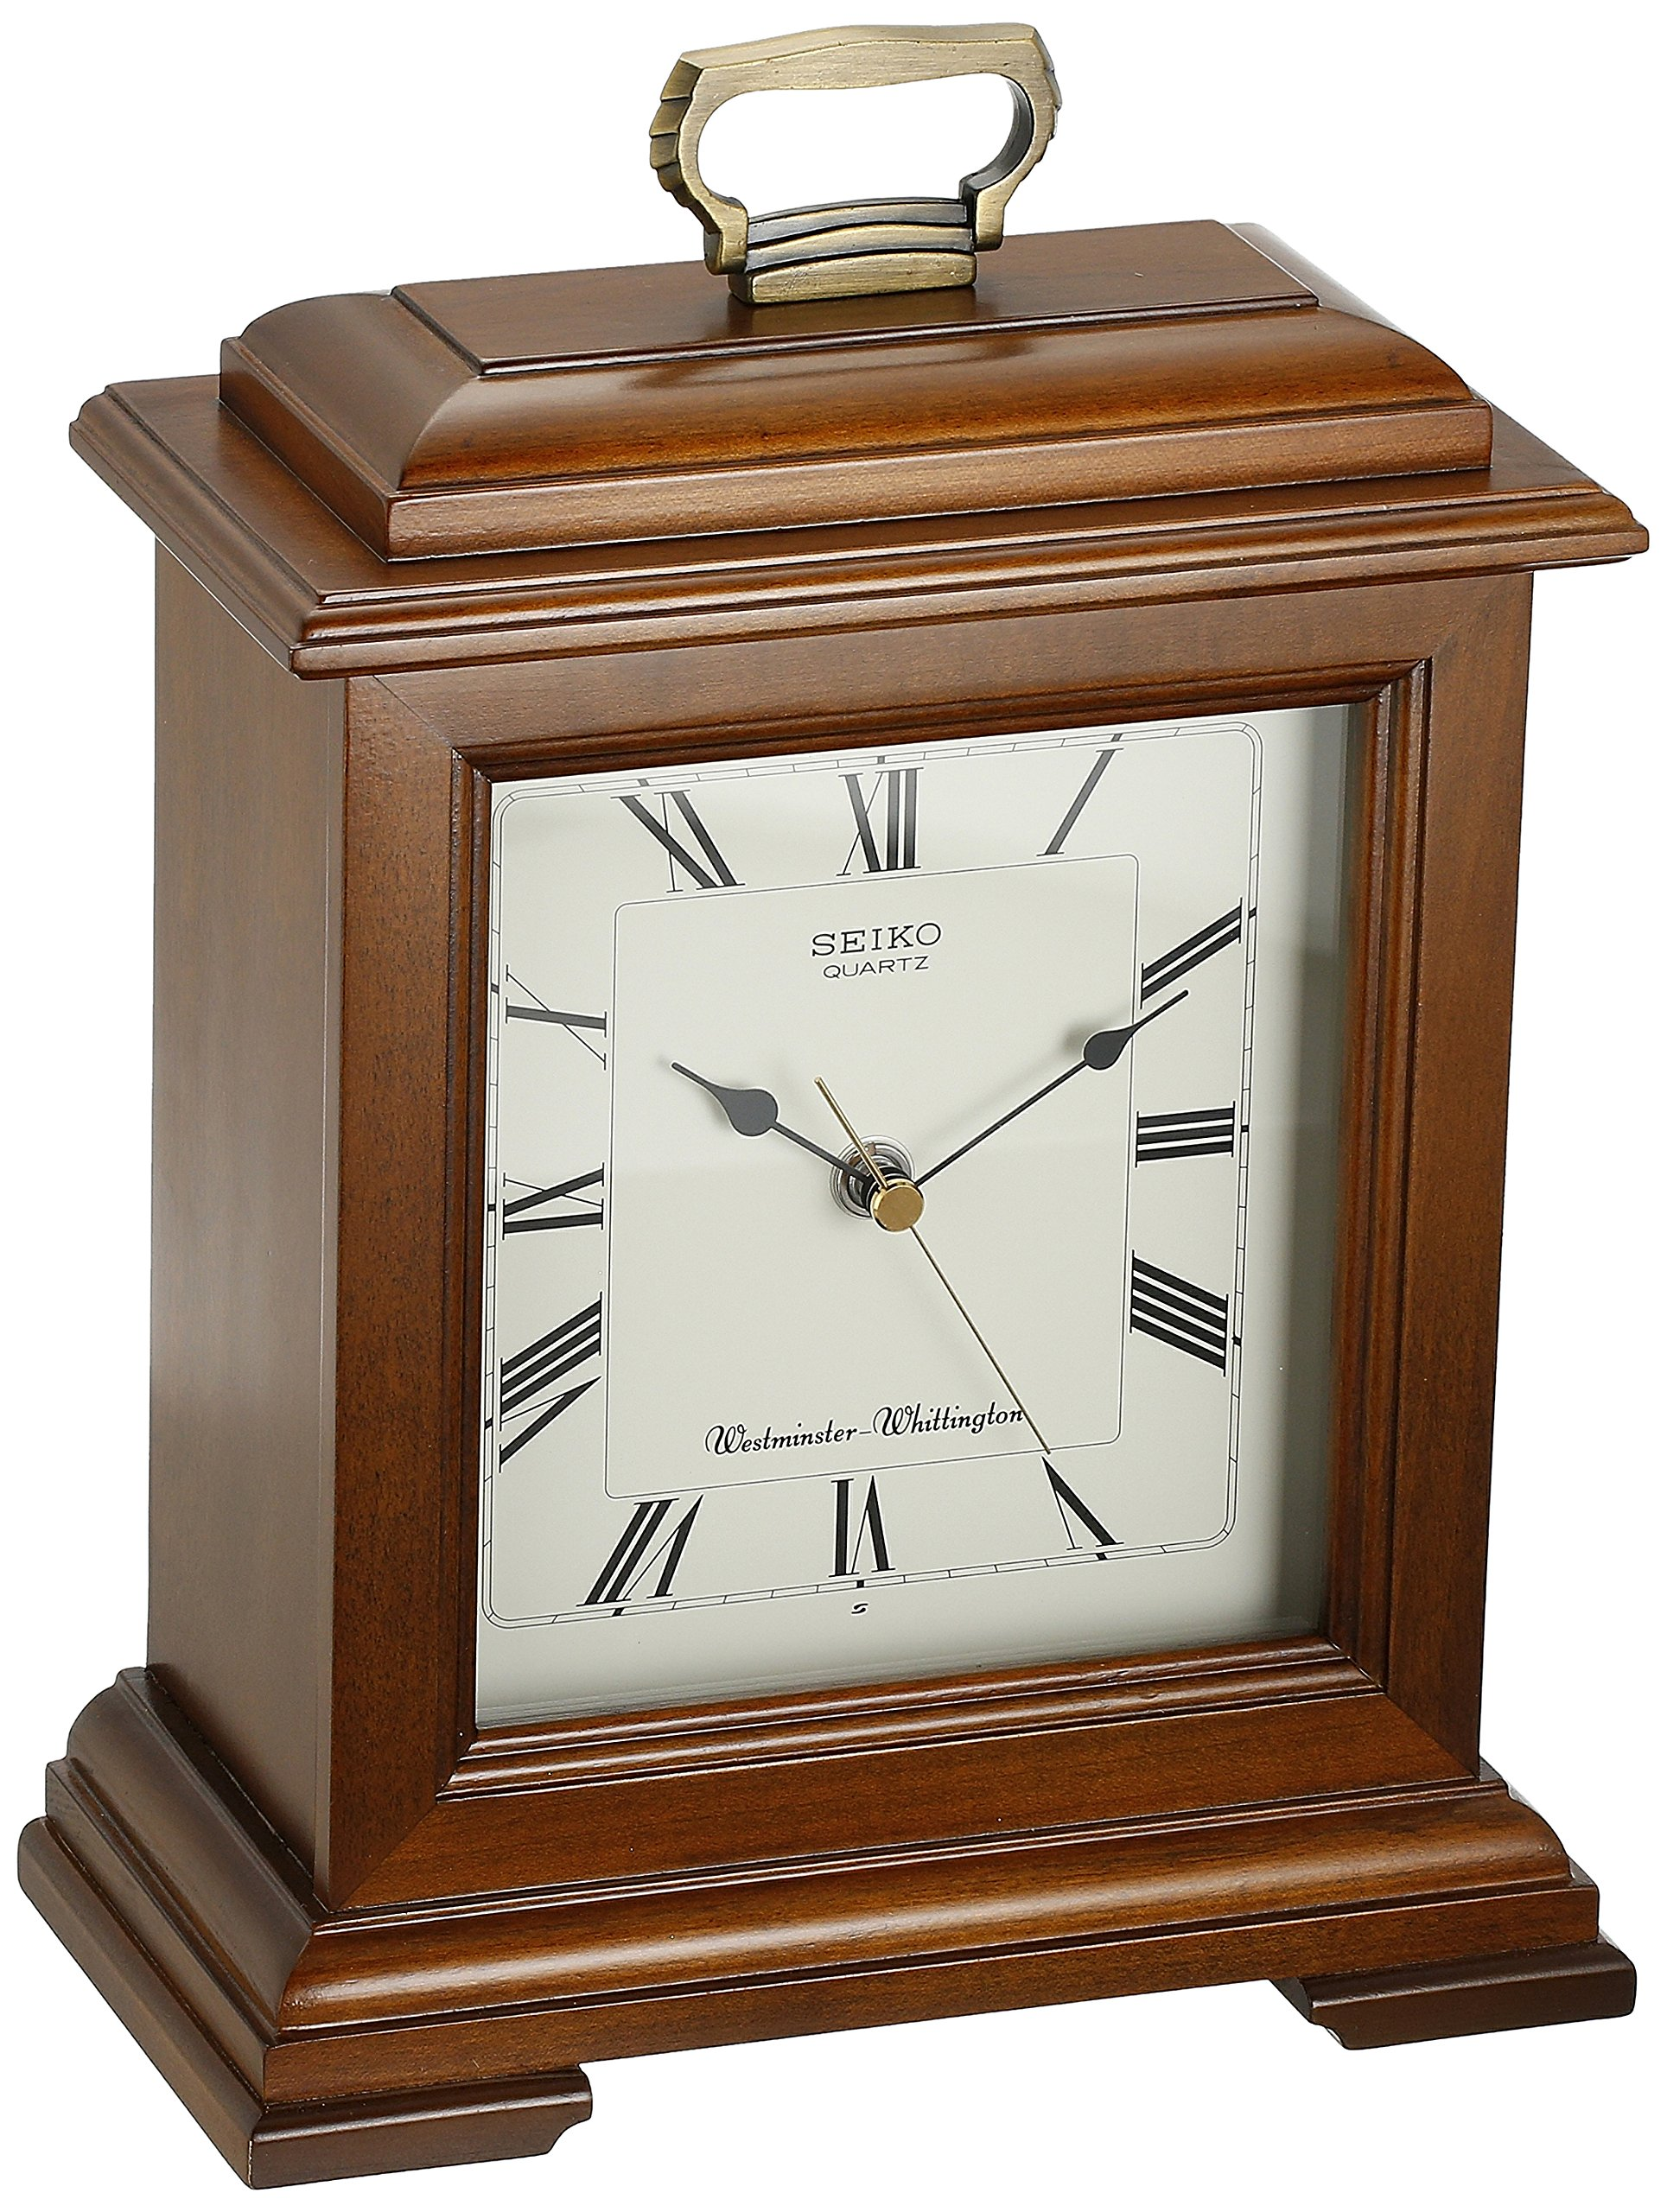 Seiko Mantel Chime Carriage Clock Cherry Finish Solid Wood Case by Seiko Watches